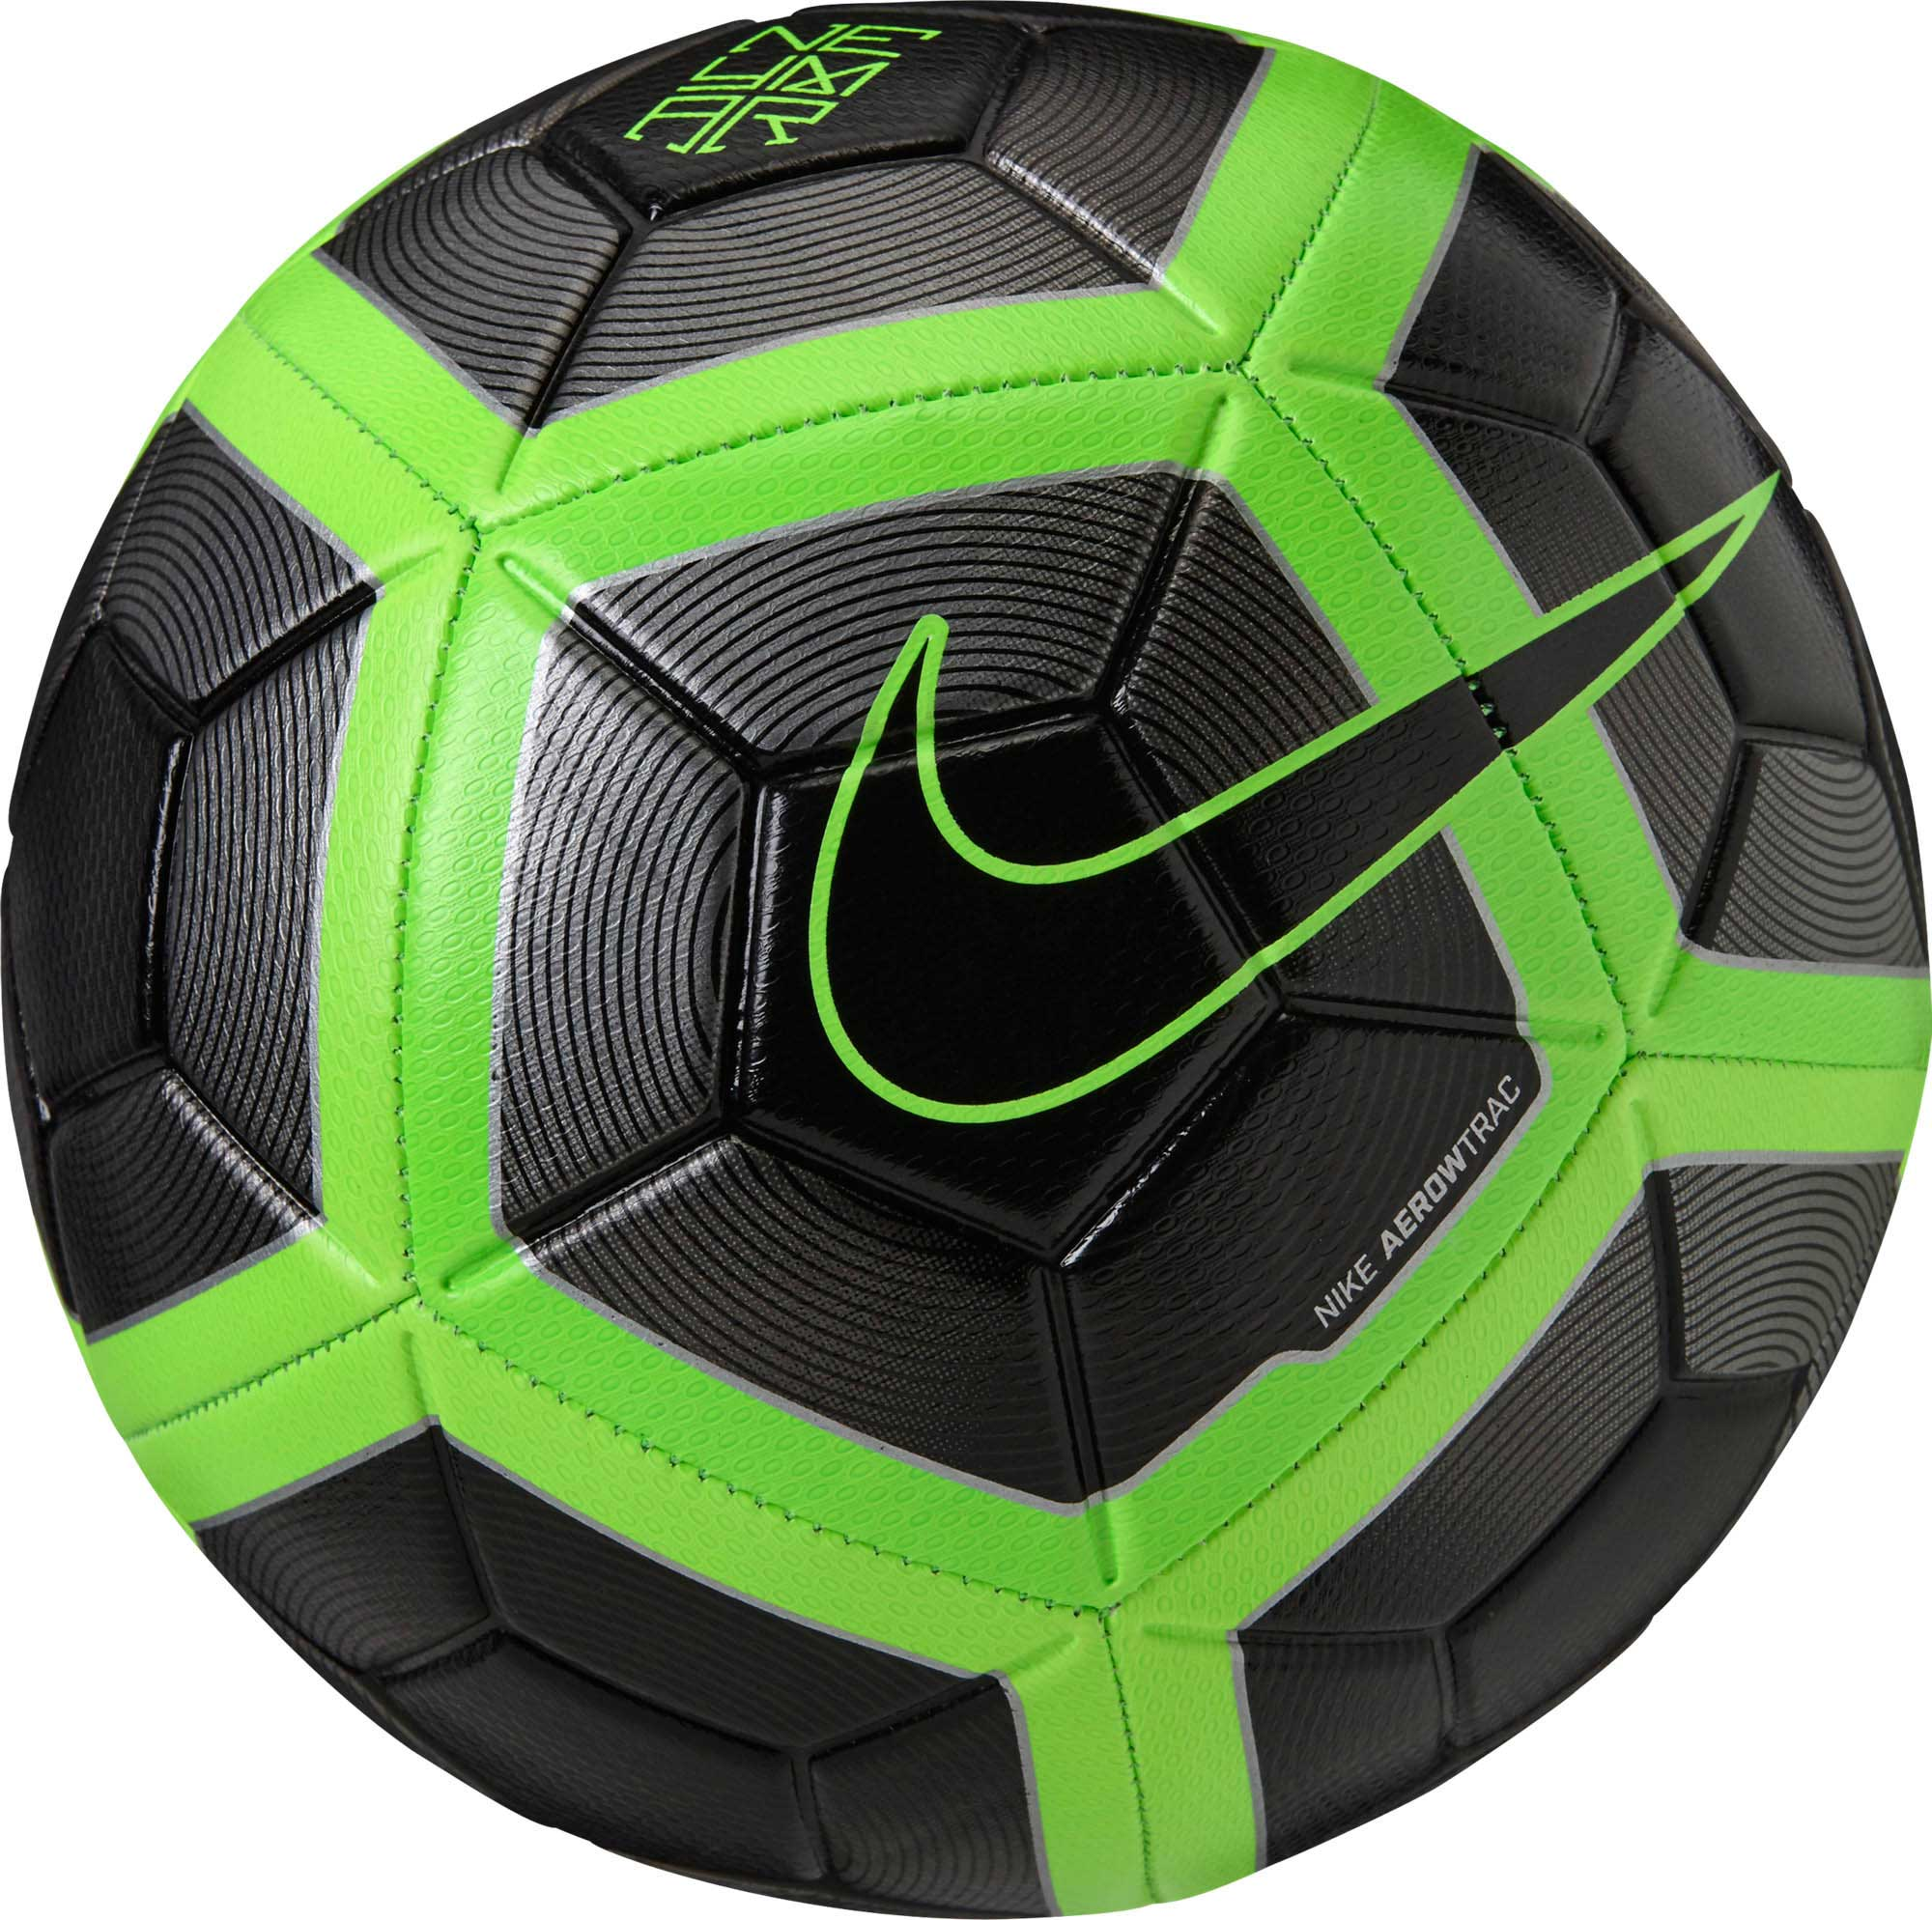 Green And Black Soccer Ball